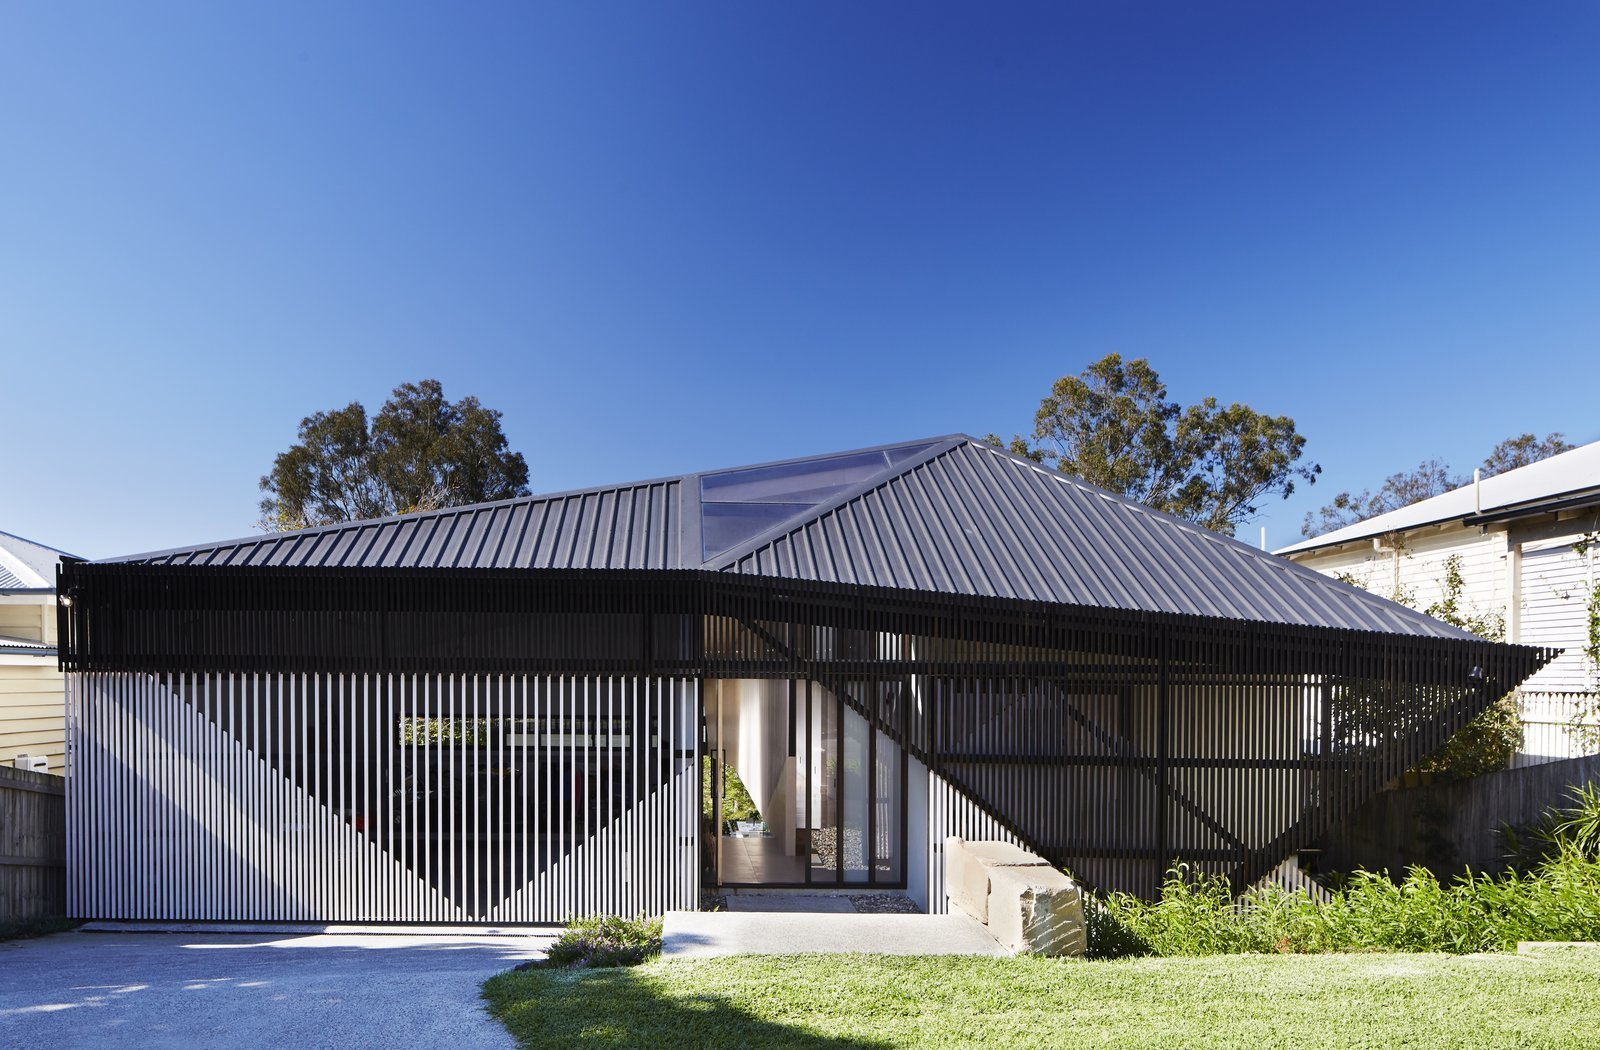 Exterior, Metal Roof Material, House Building Type, and Metal Siding Material  Photos from An Edgy Slatted Facade Conceals a Striking Indoor/Outdoor Home in Brisbane